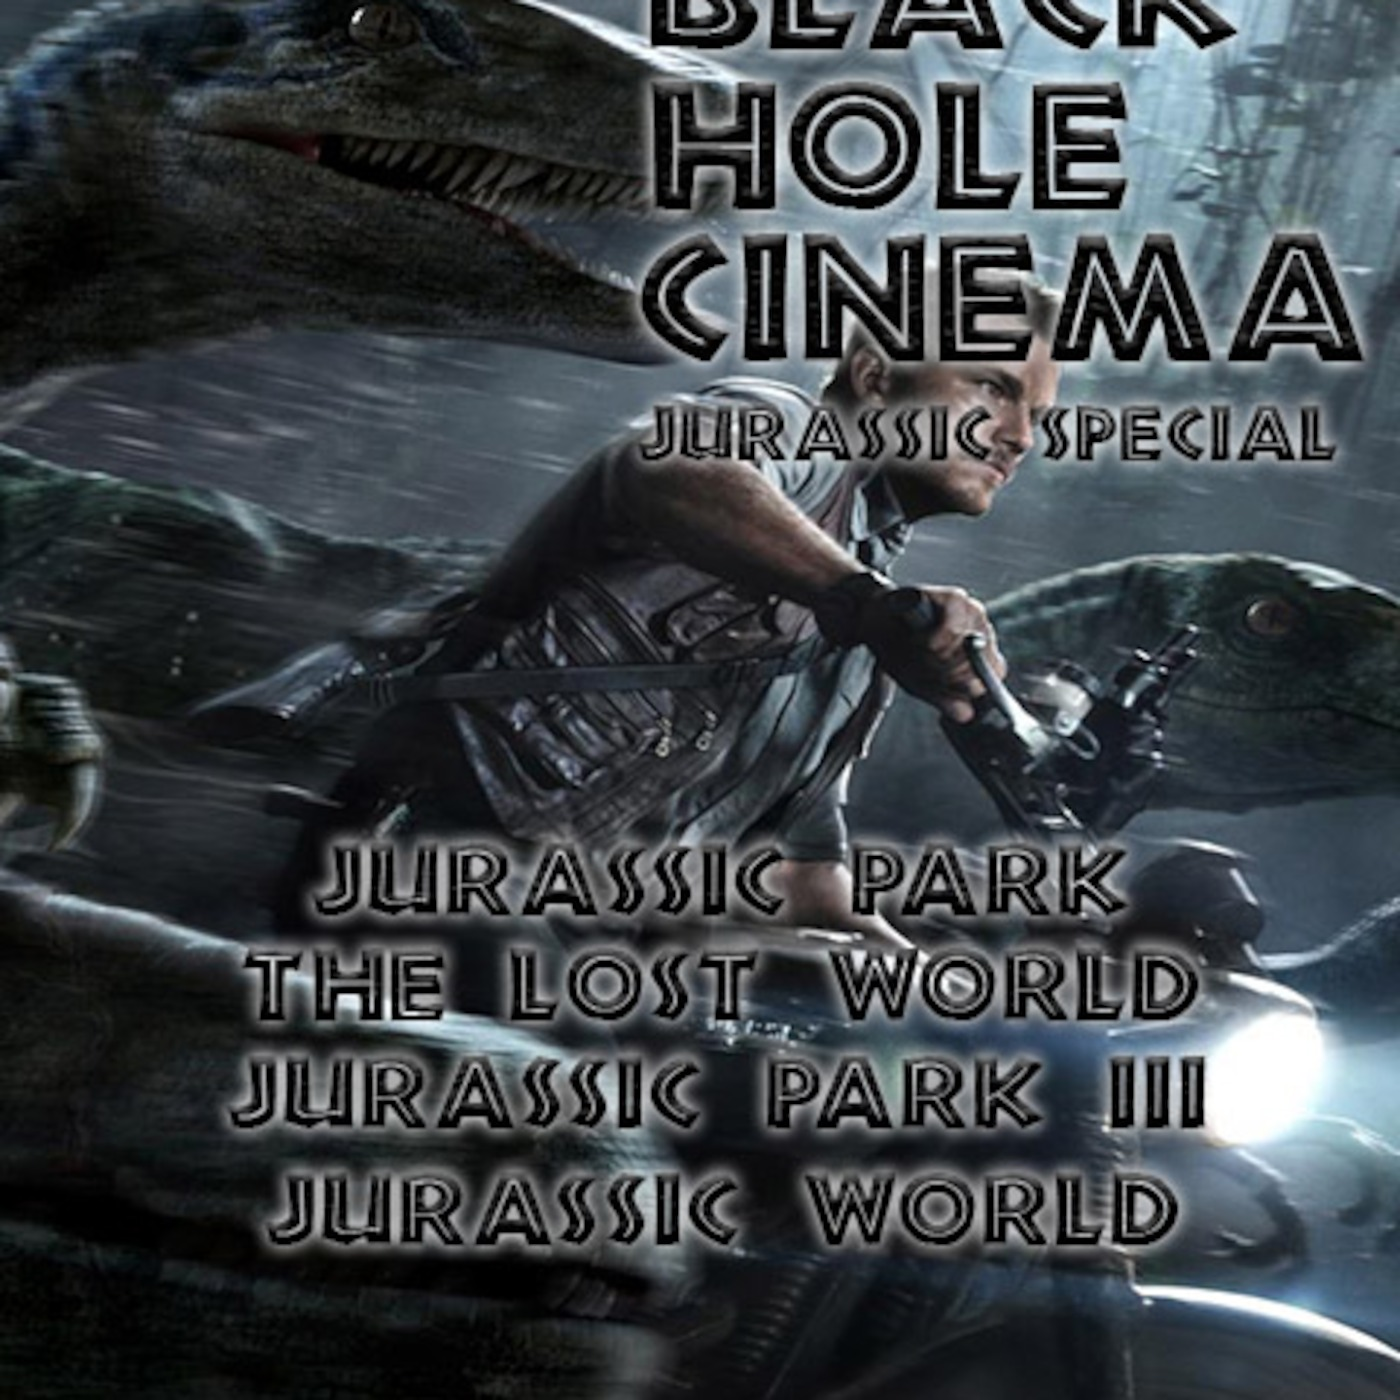 jurassic special jurassic park the lost world jurassic park